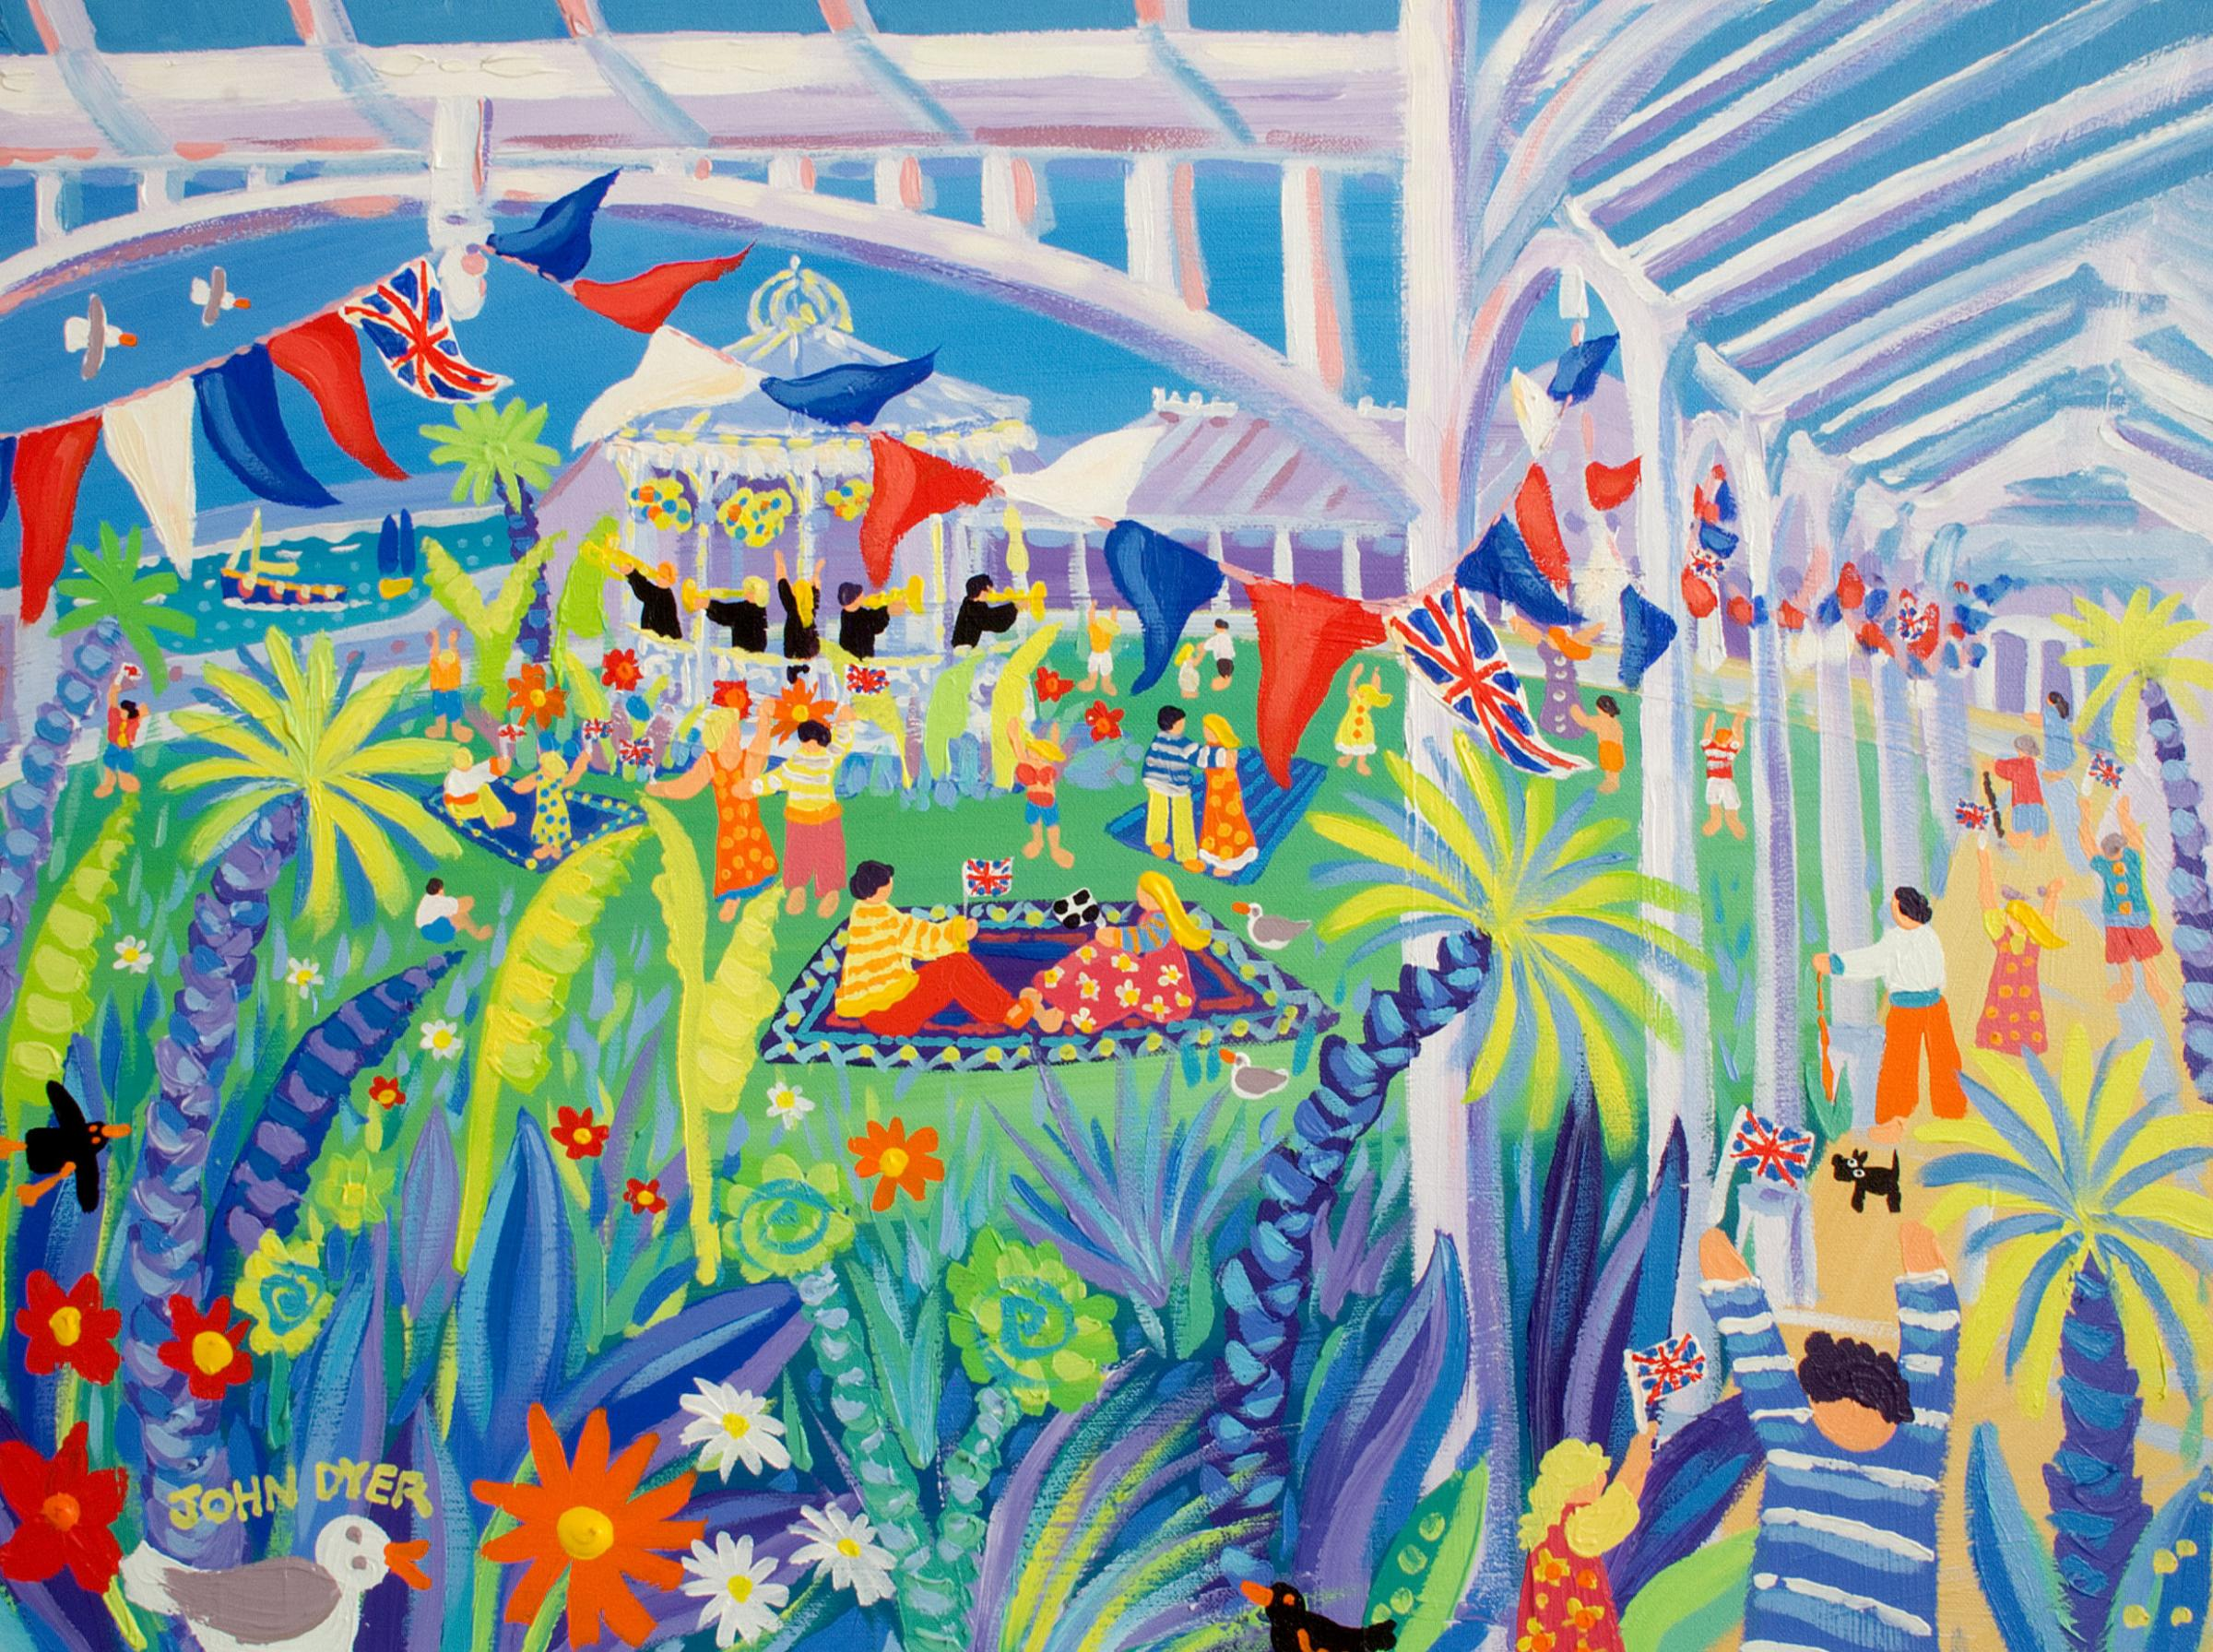 The John Dyer painting, Celebration Picnic, which has been stolen